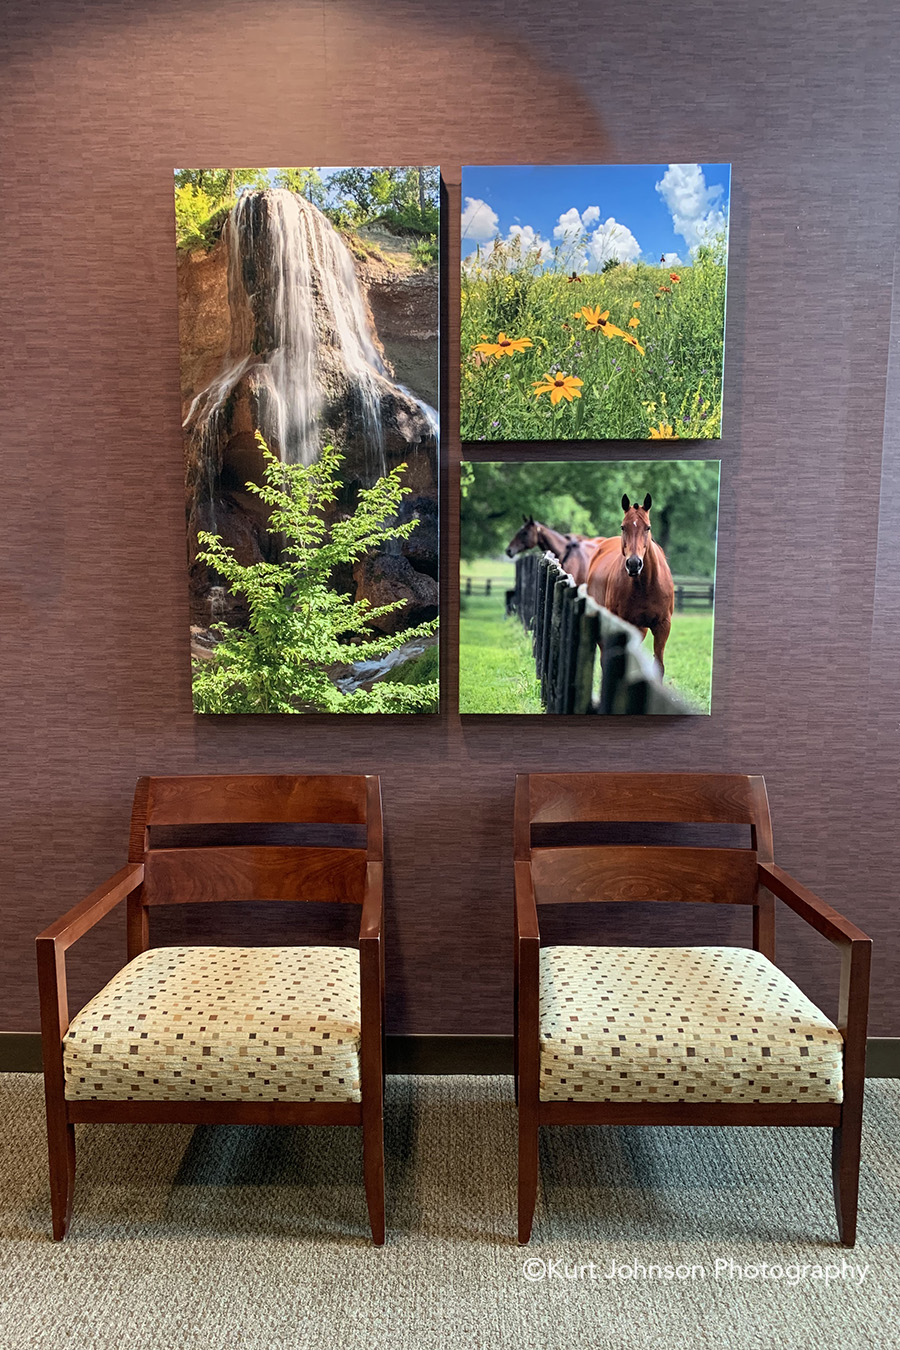 gallery wrapped canvas midwest nature wall art seating waiting area lobby install healthcare installation